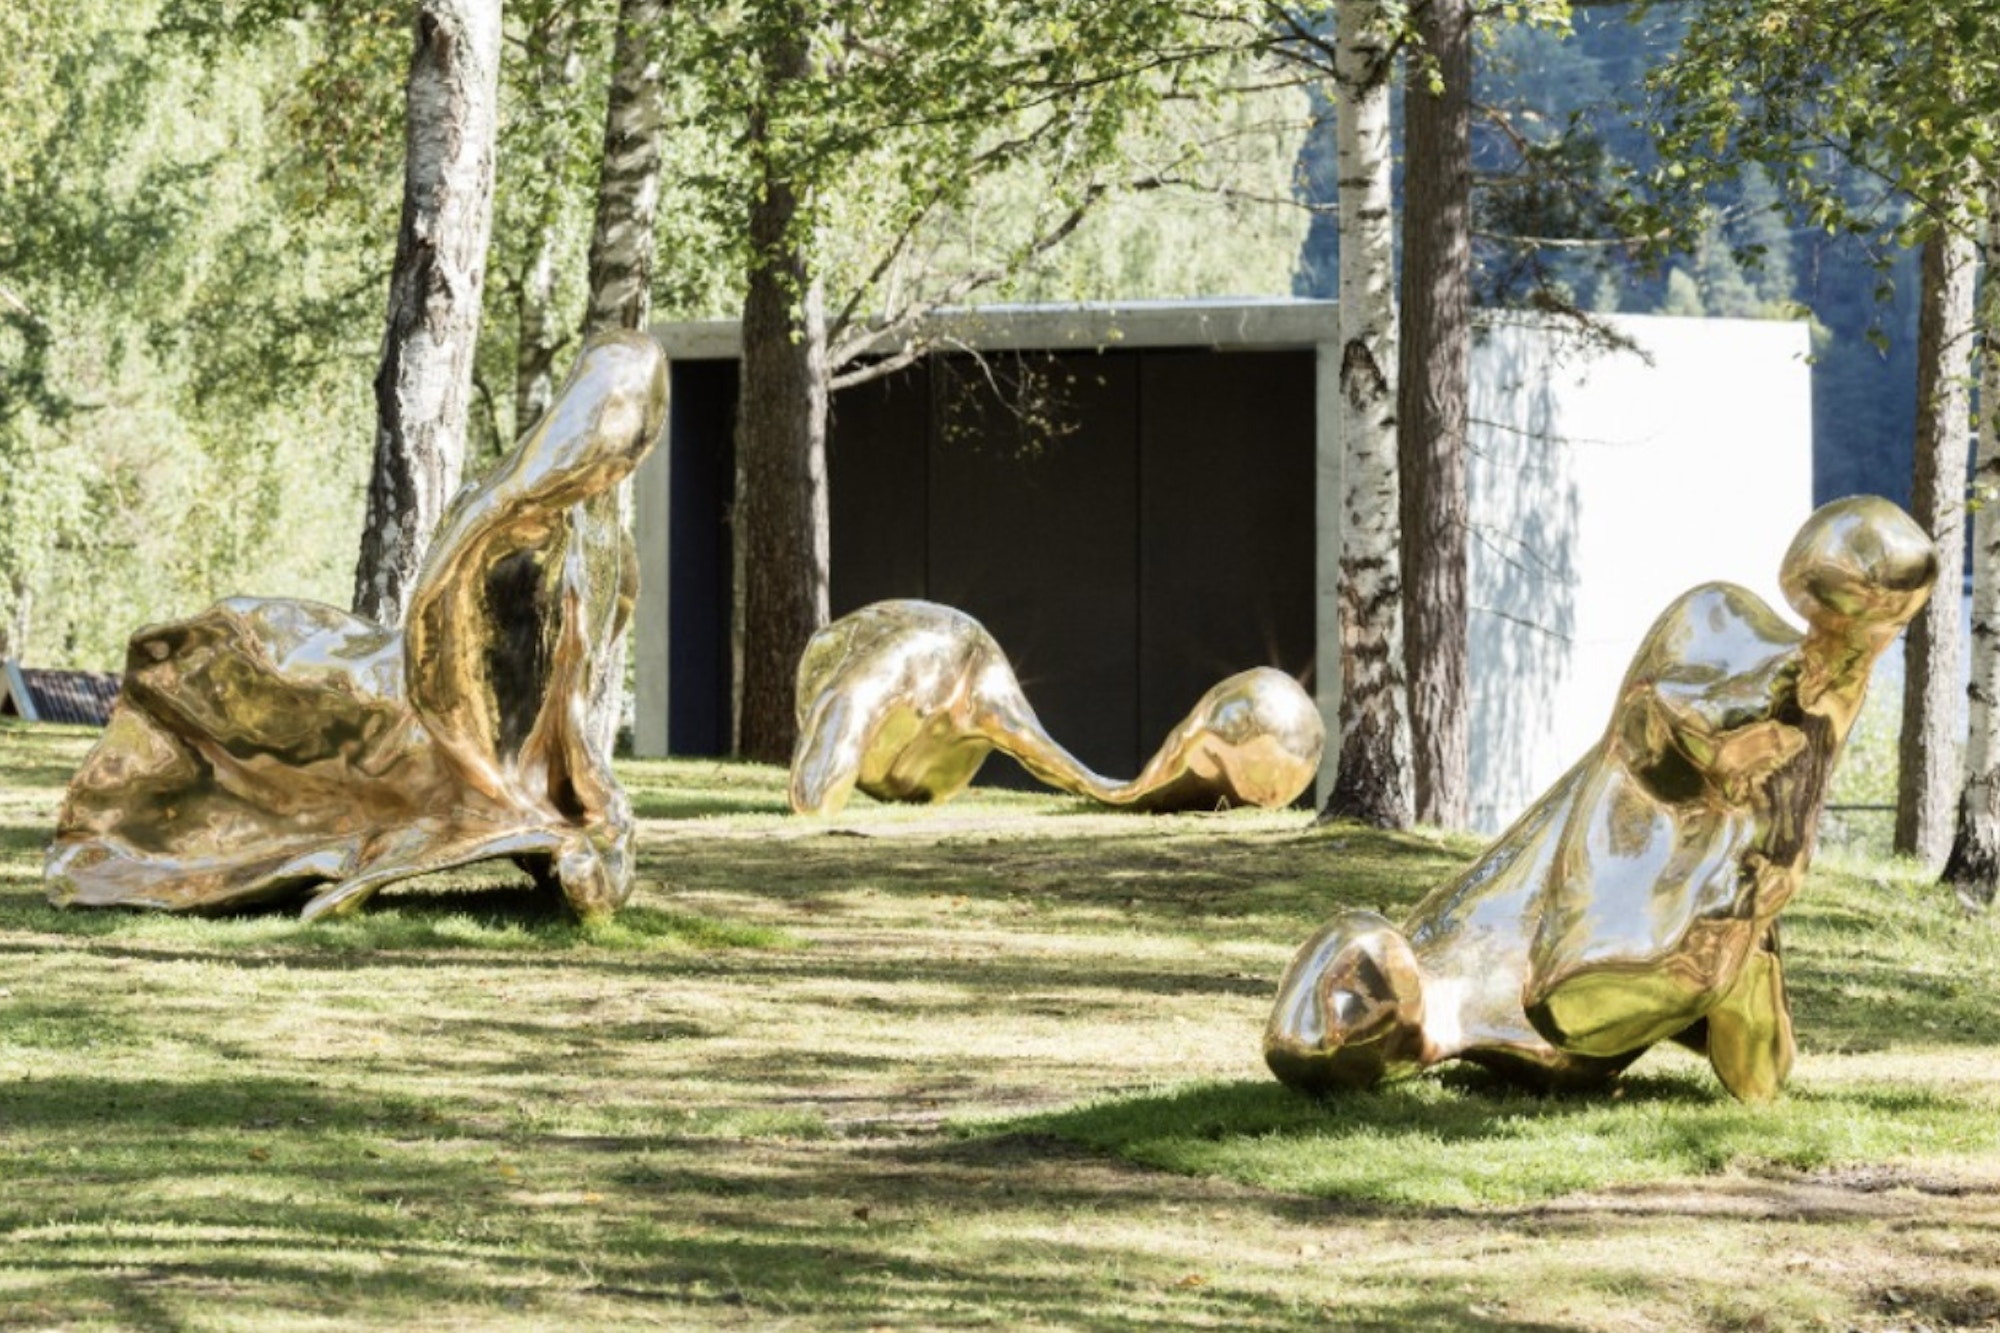 Three sculptures, gold, shiny, abstract forms